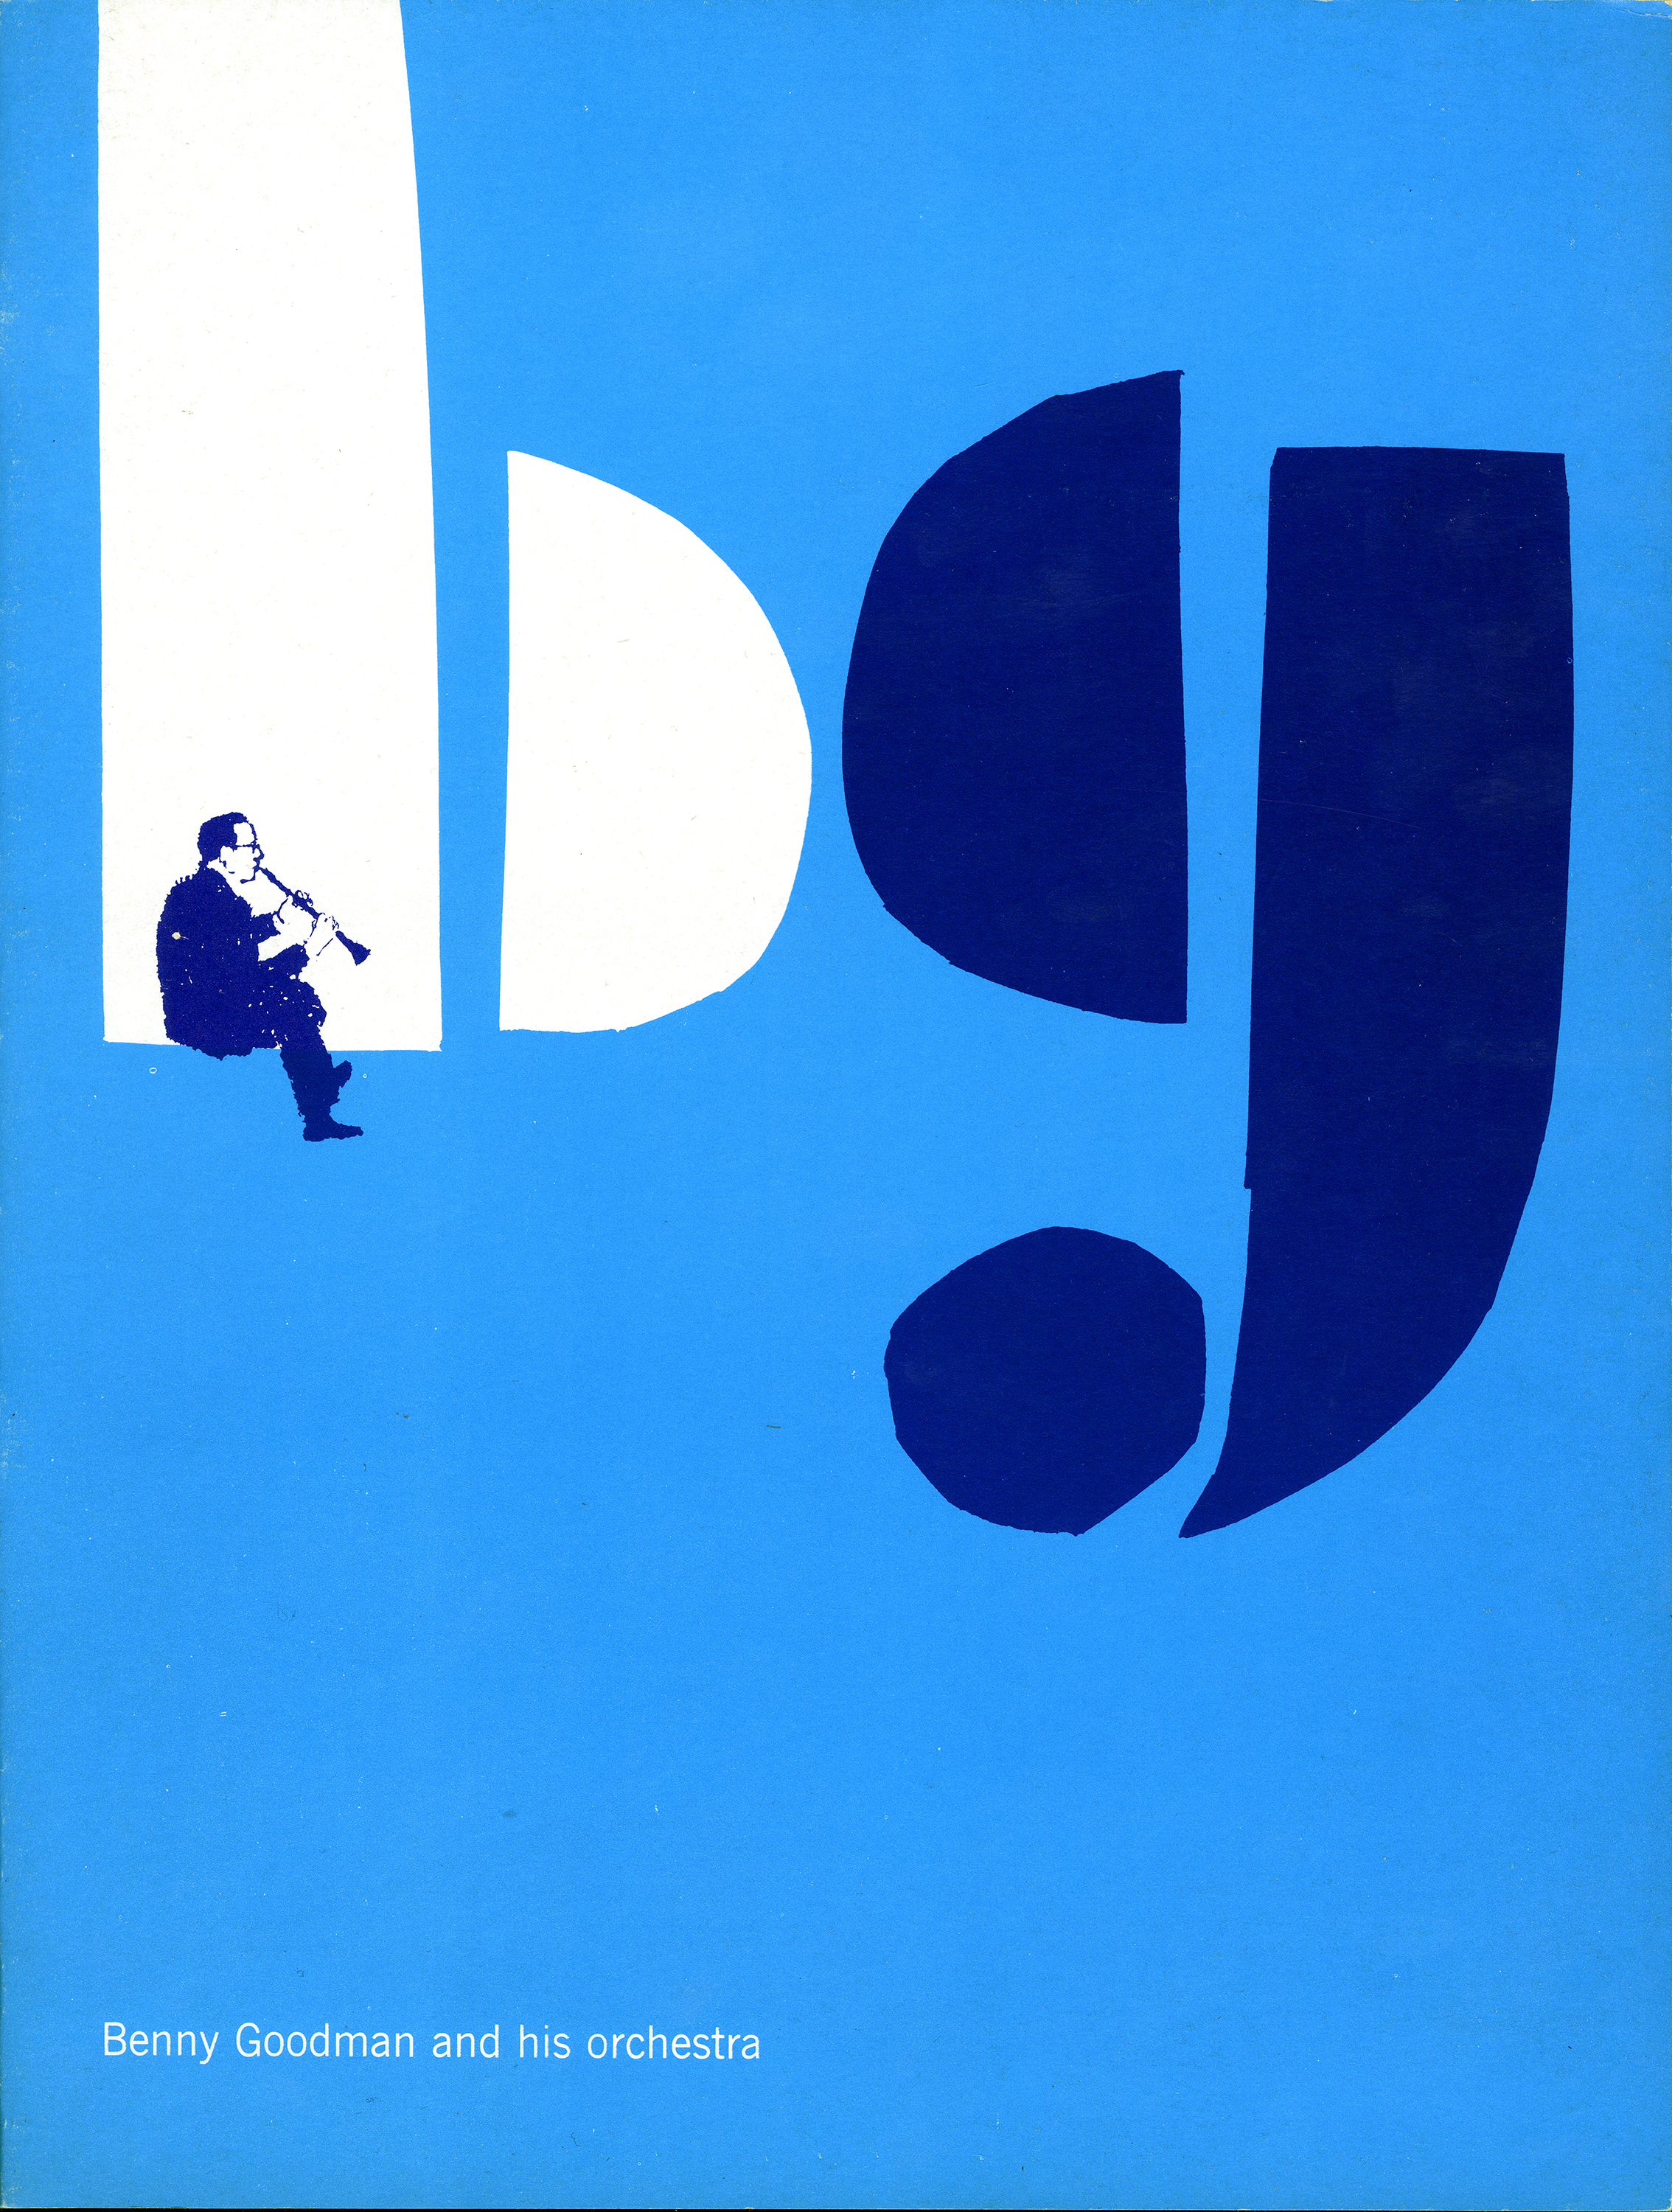 "Program cover featuring a large lower-case b and g, in white and navy, respectively, against a blue background, while the figure of Benny Goodman sits in the ""b"" and plays the clarinet."